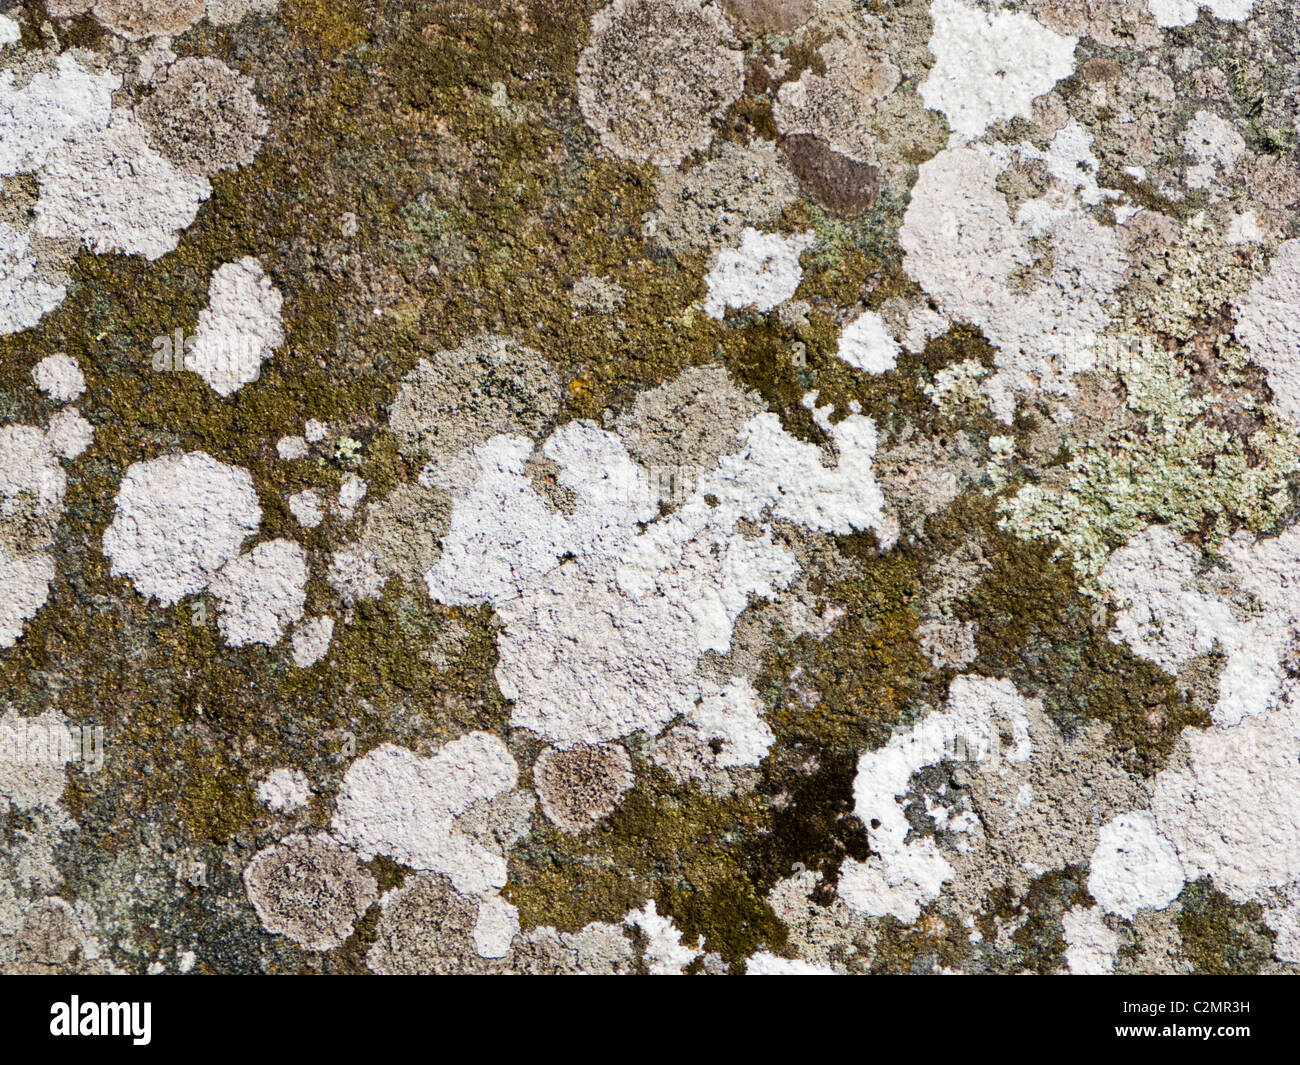 Lichens and mosses on granite stone rock close up - grey abstract stone texture - Stock Image